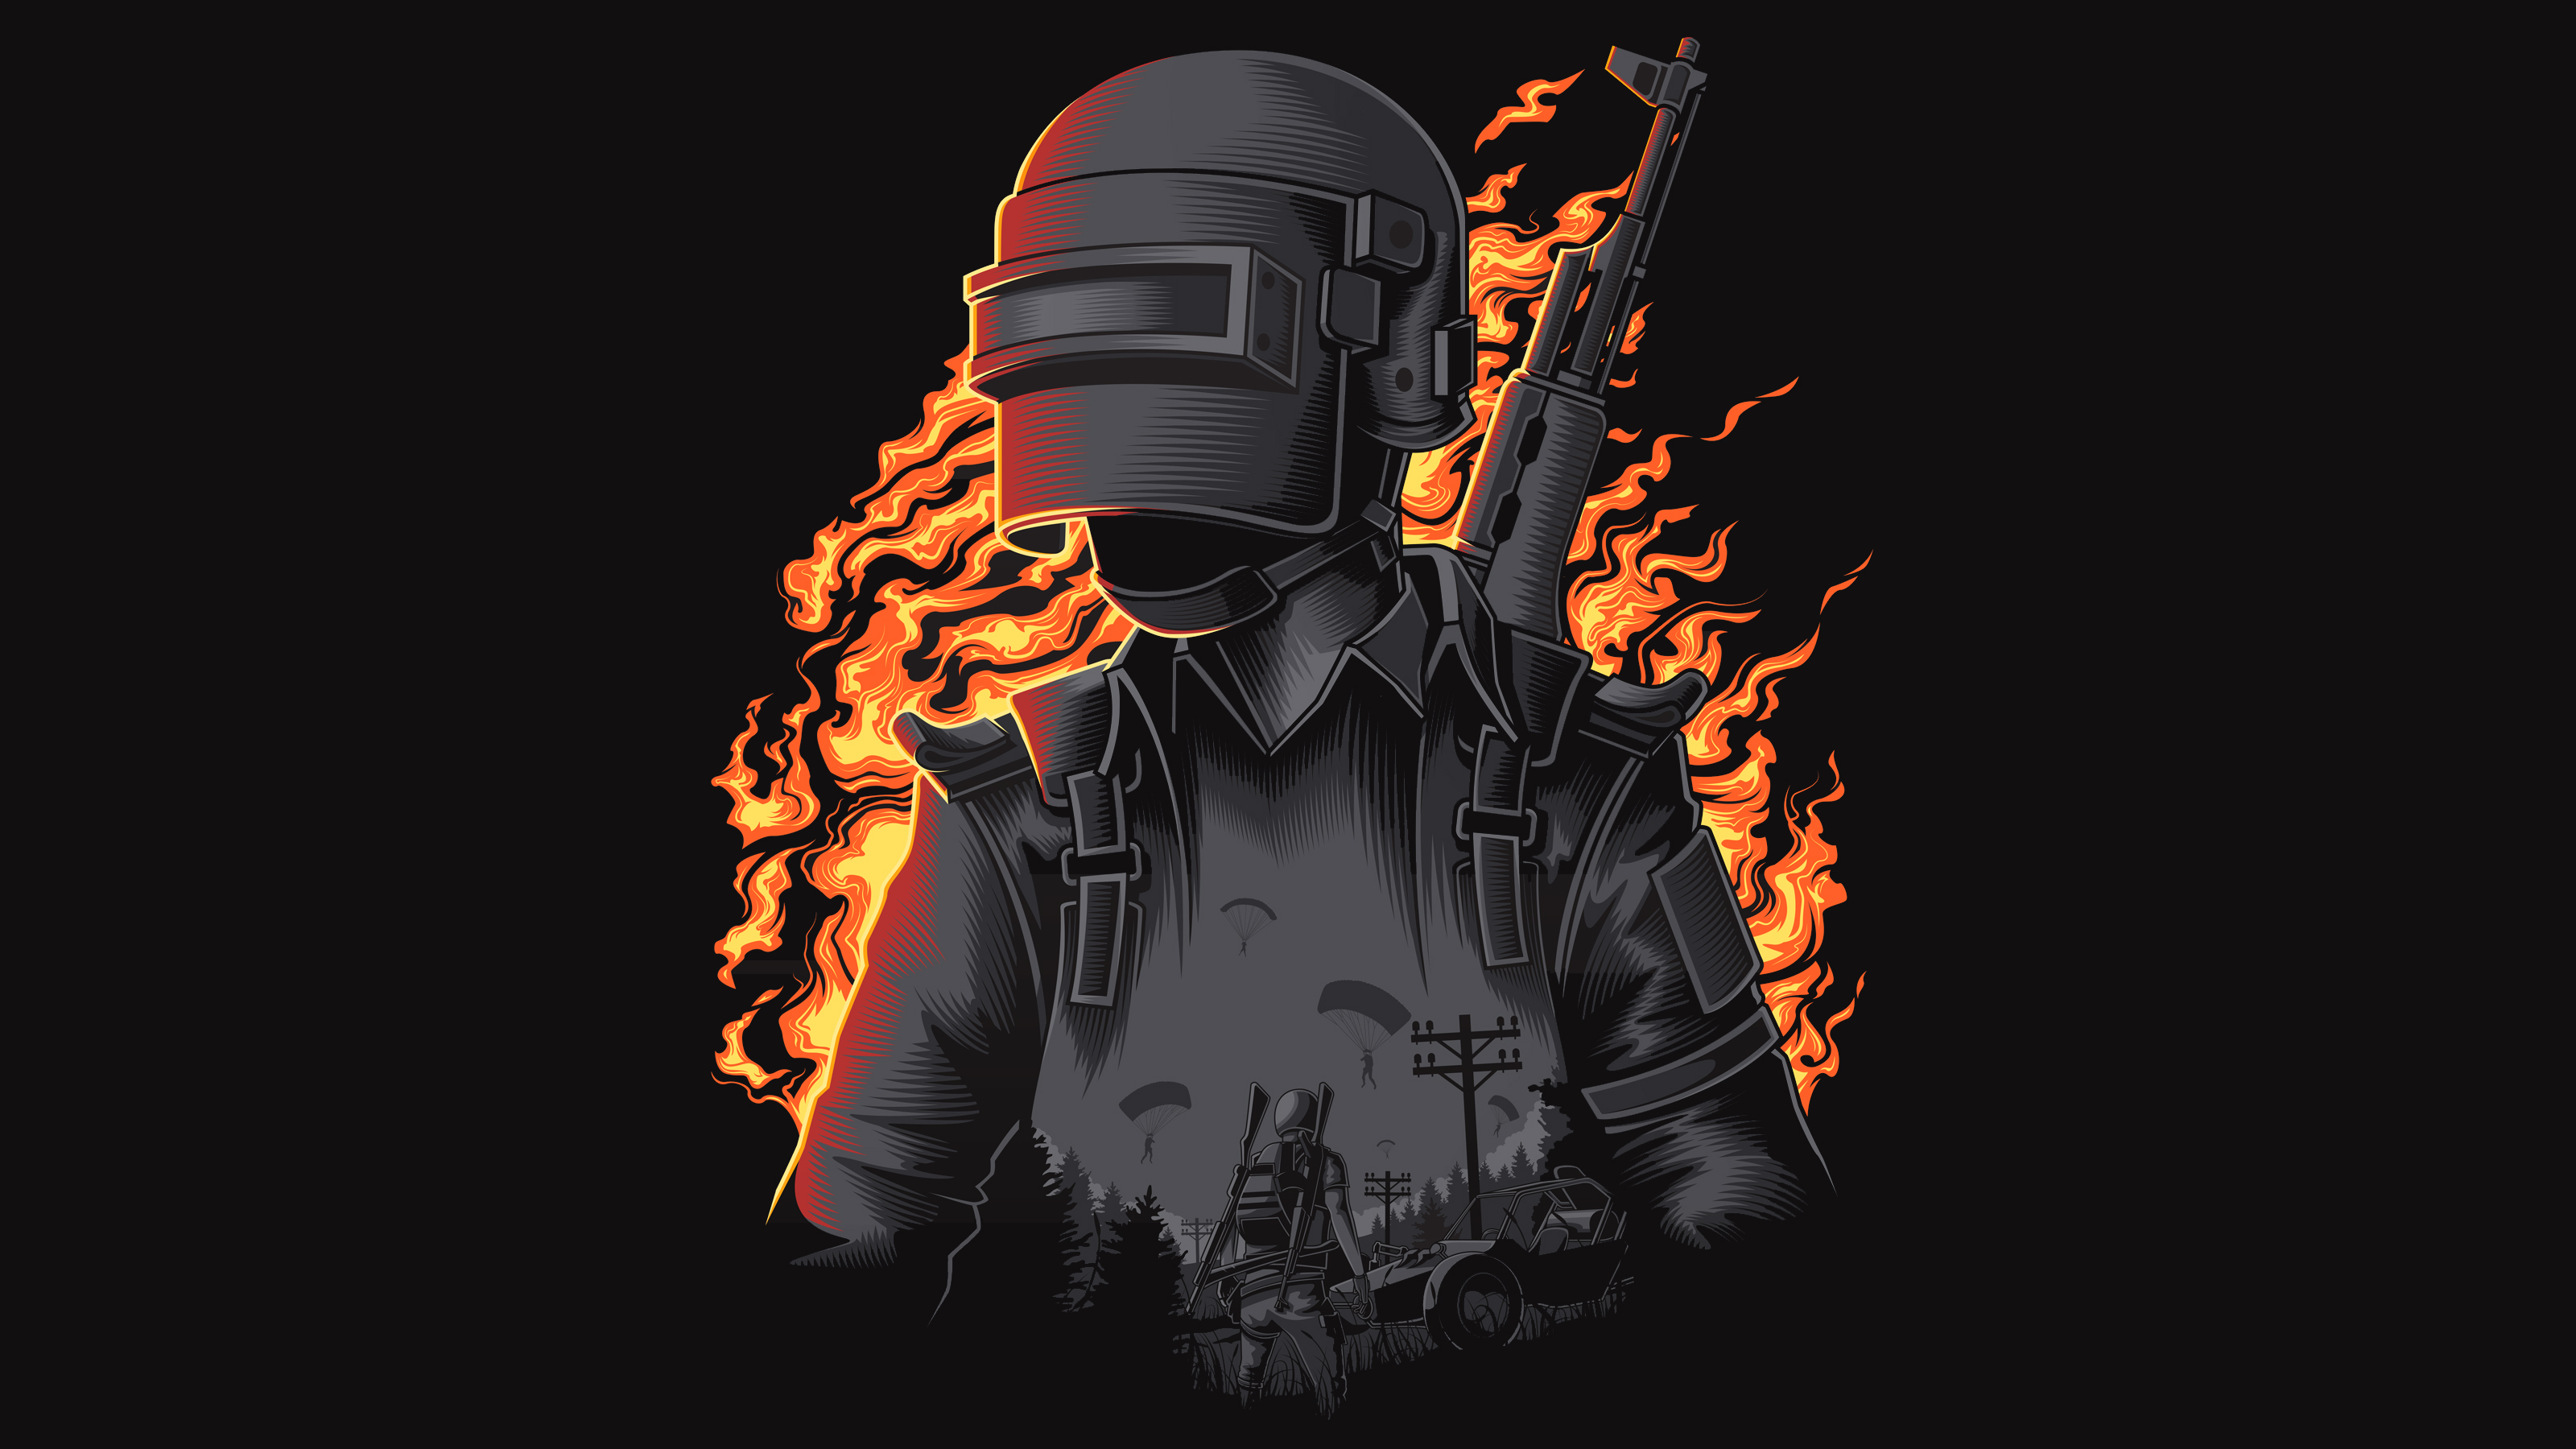 Pubg Black Wallpapers: PUBG Dark Illustration Wallpapers